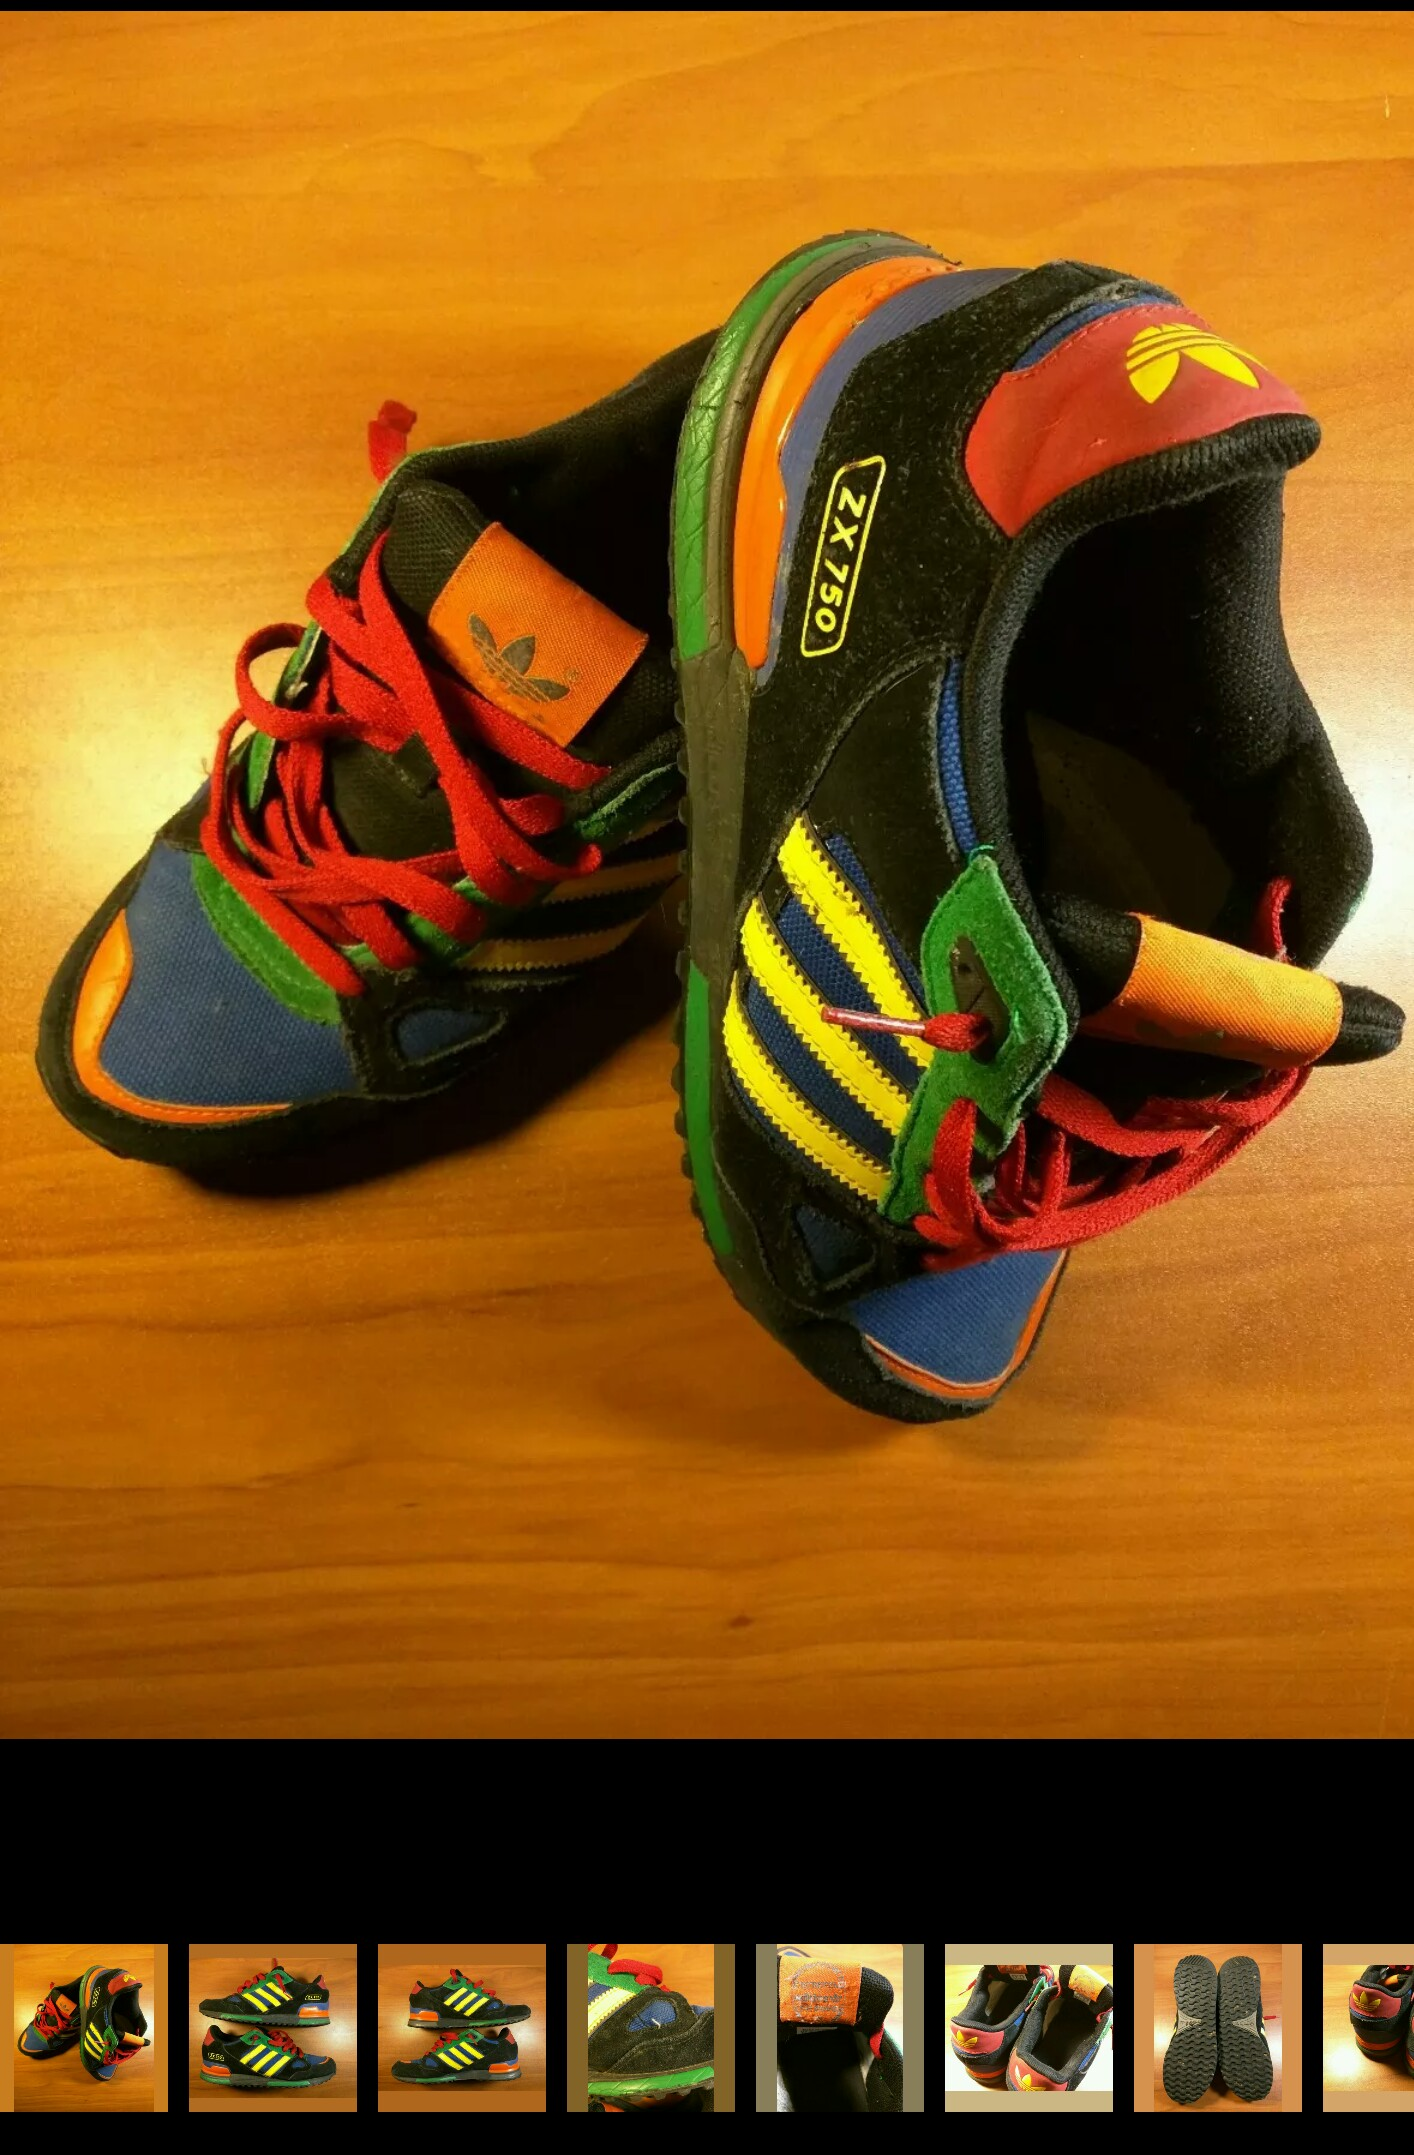 adidas zx 750 sneakers